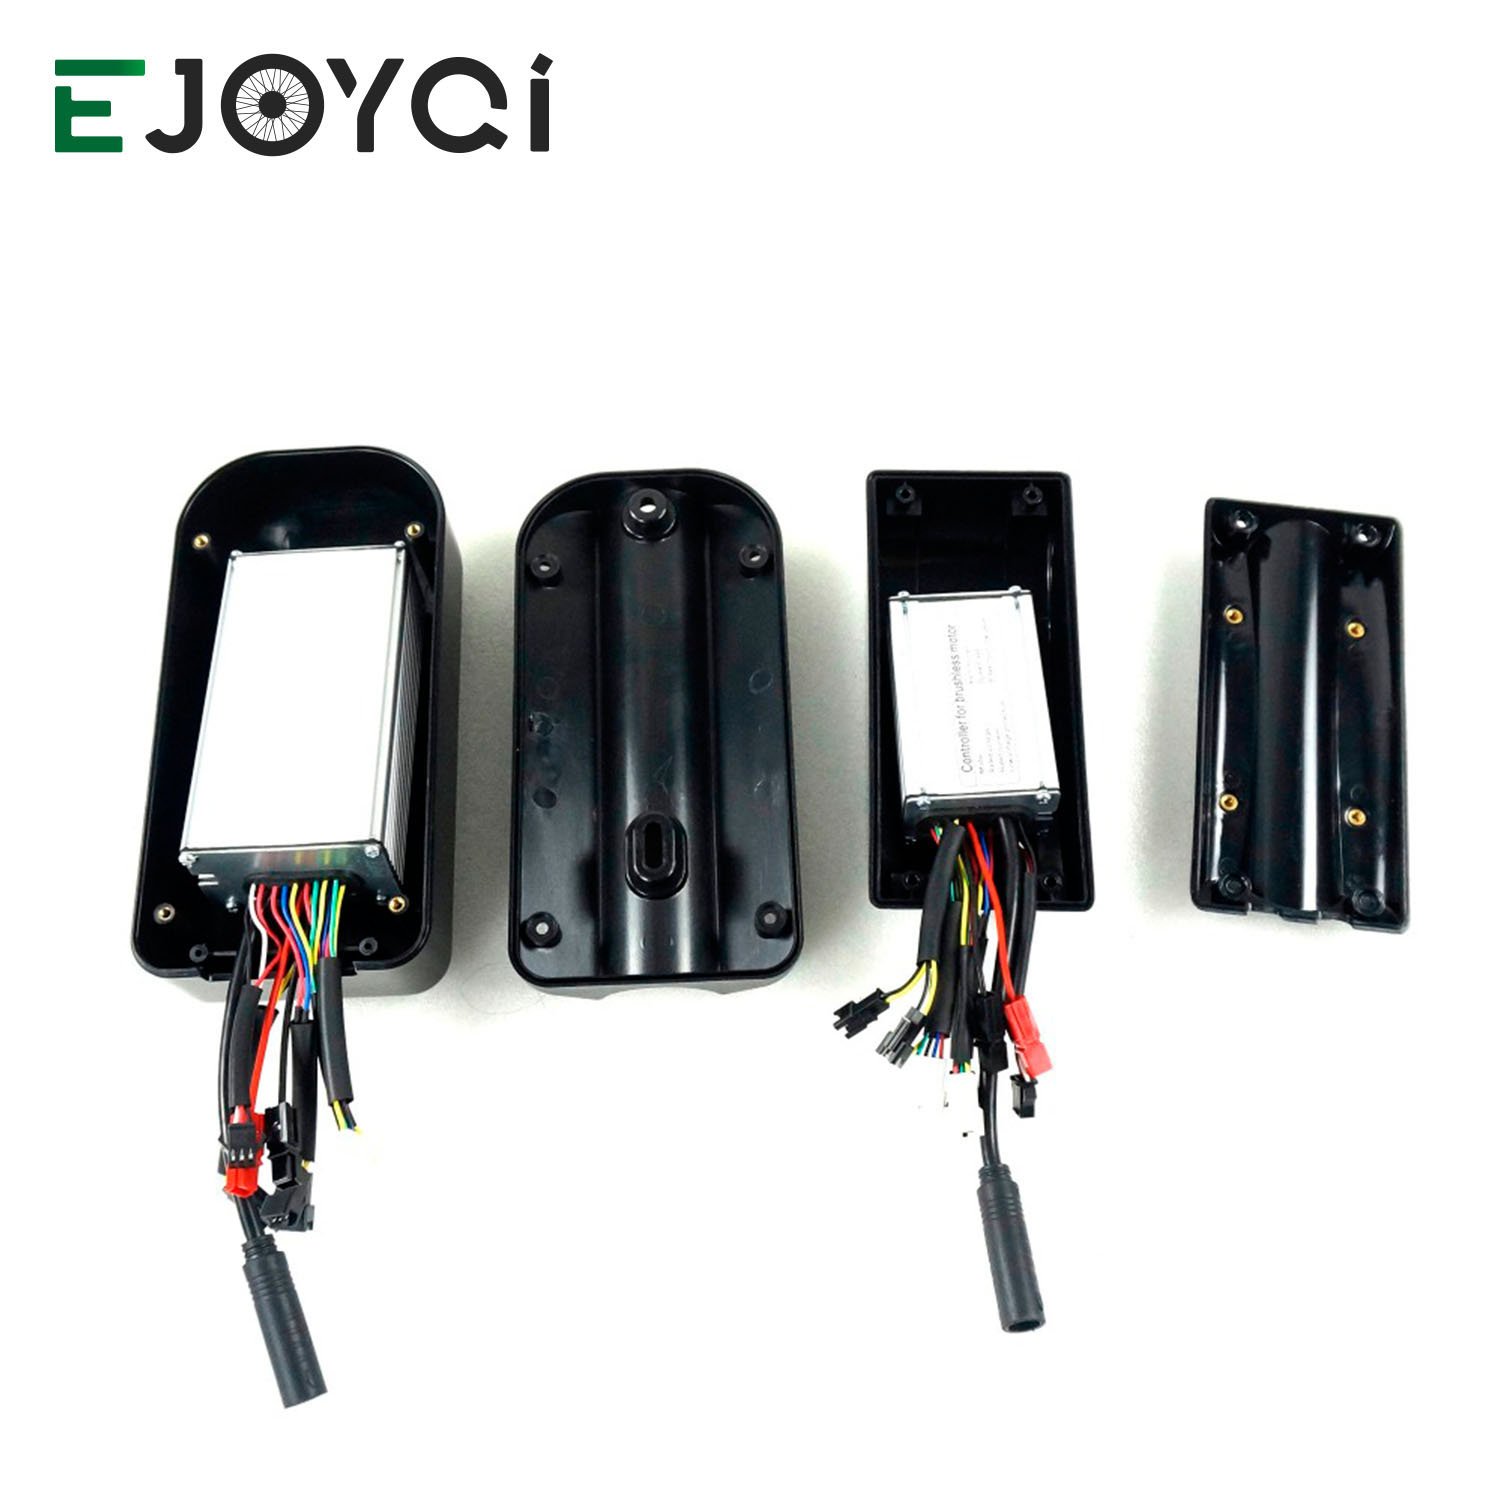 EJOYQI Controller Box Inside For 6 9 12 Mosfets Controller For 14A 22A Controller Electric Bicycle Parts Accessories